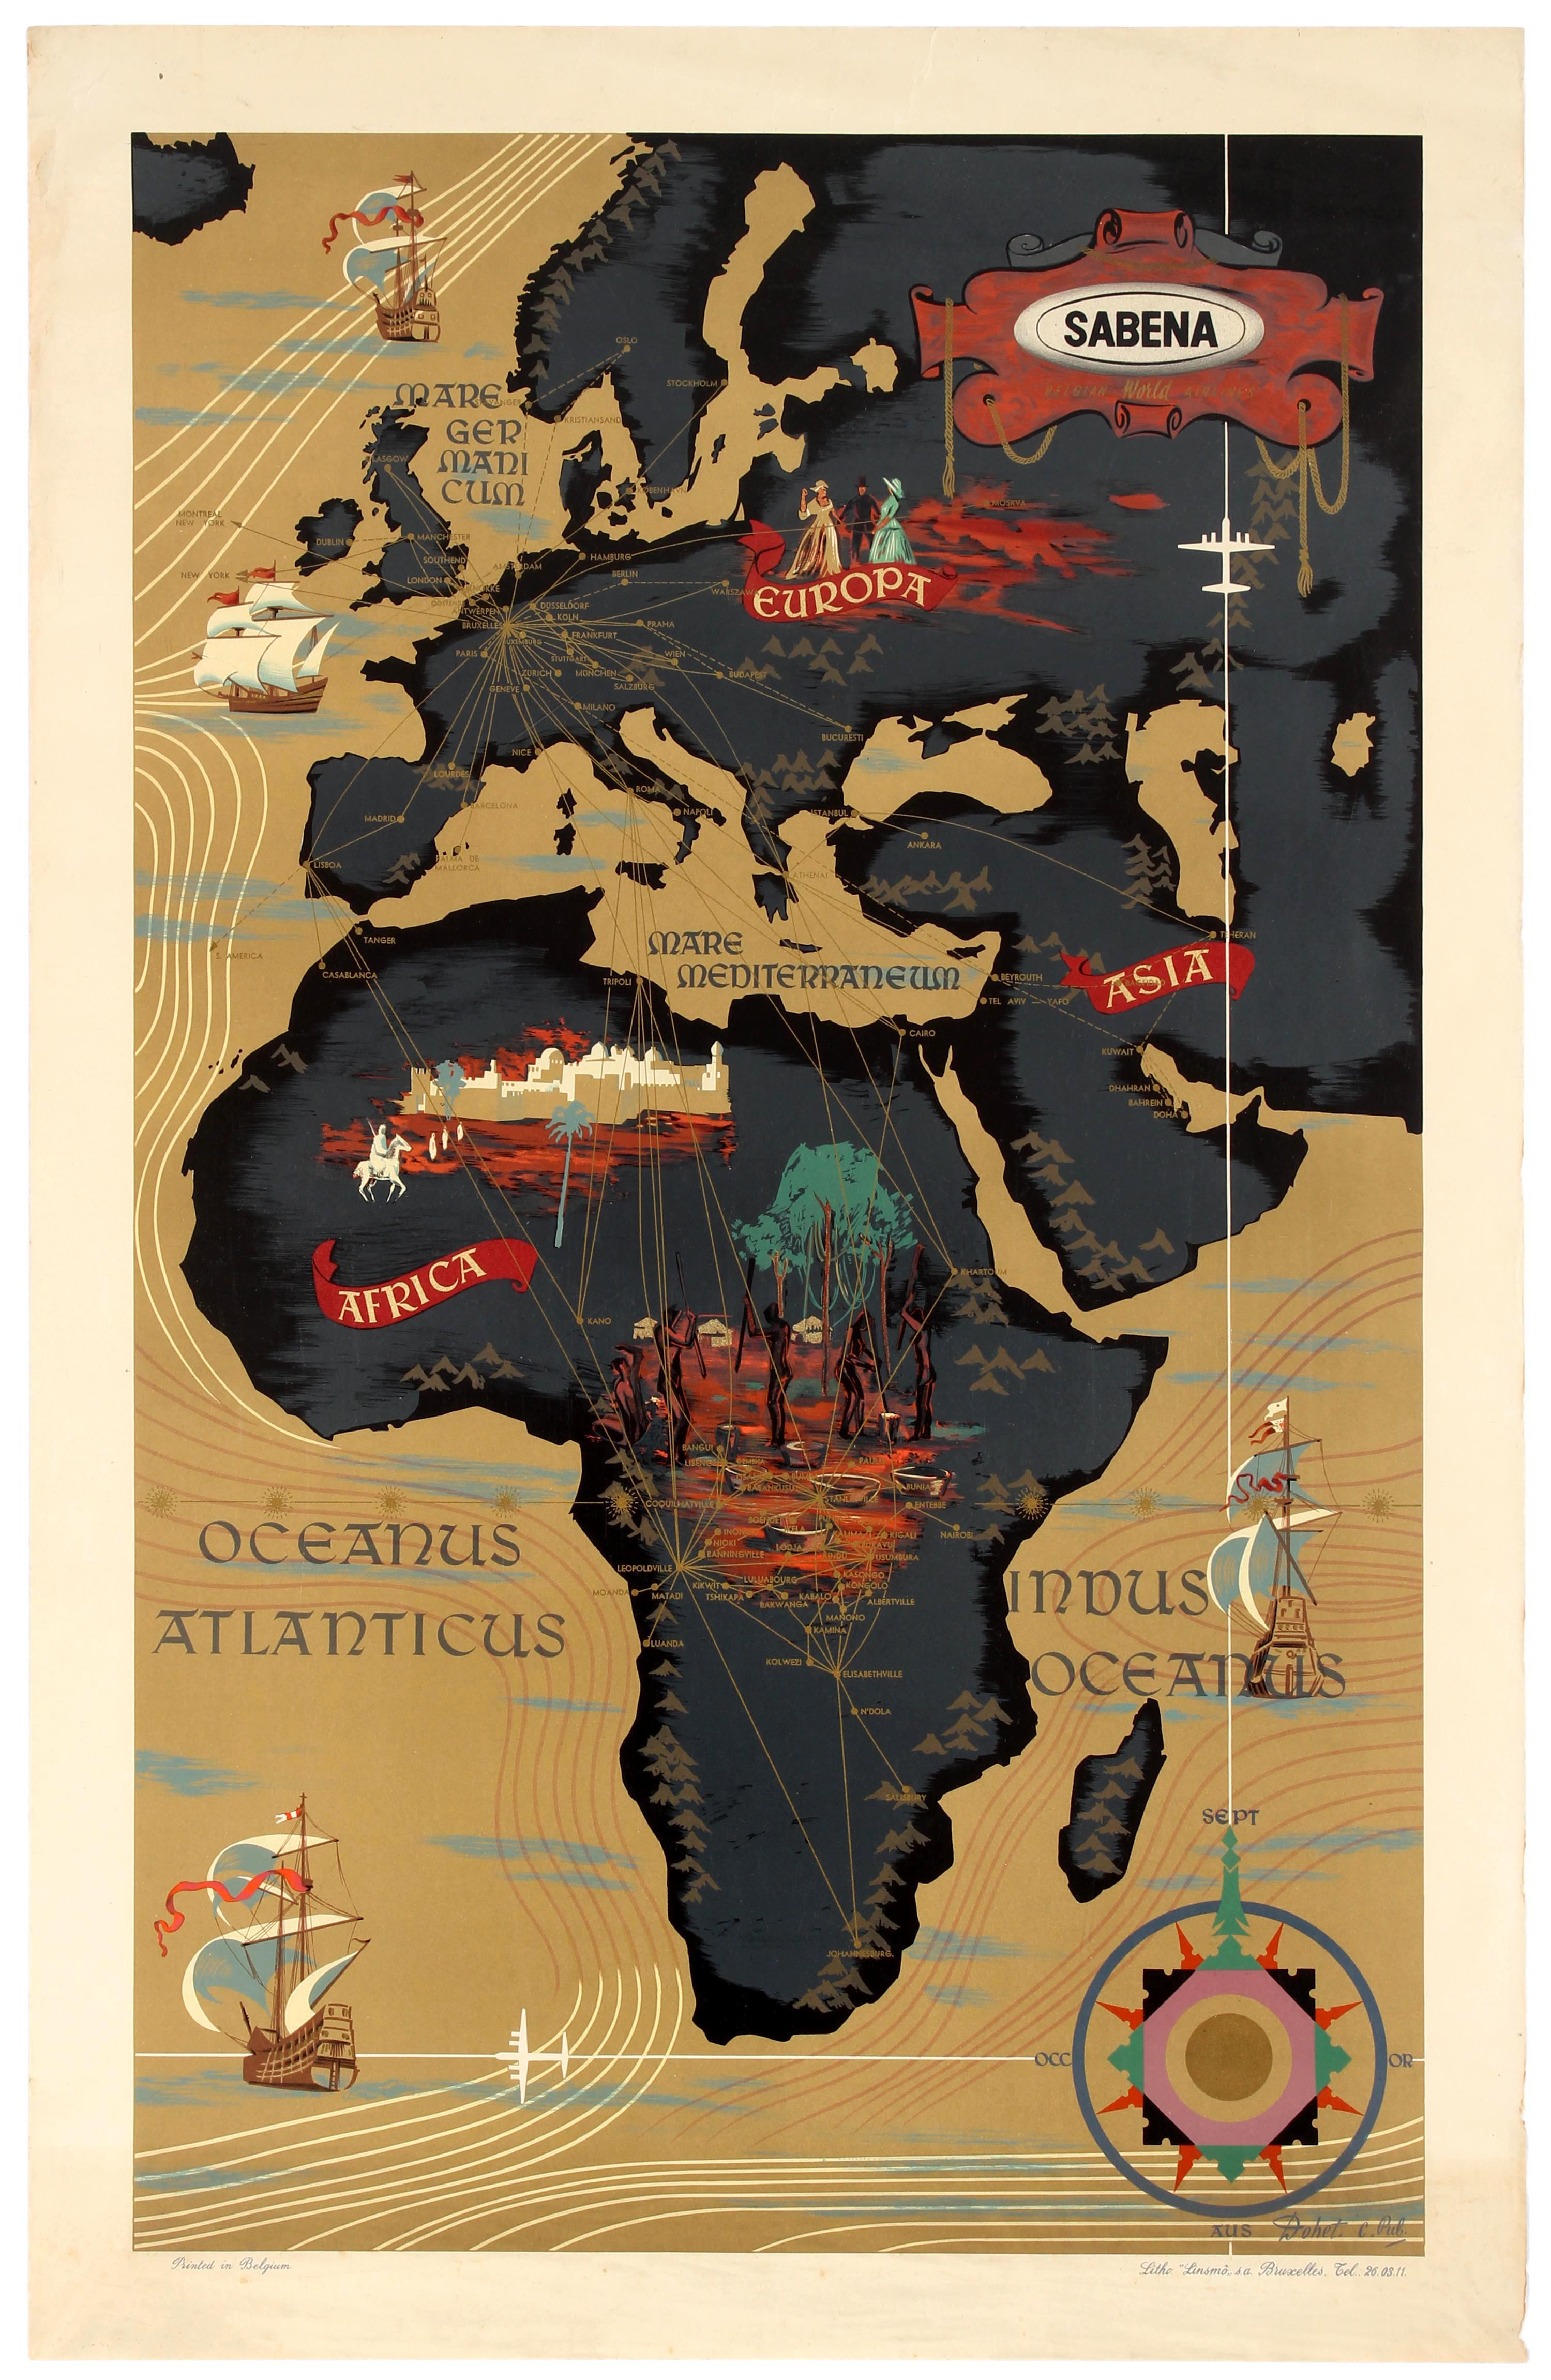 Lot 2507 - Travel Poster Sabena Airline Route Map Africa